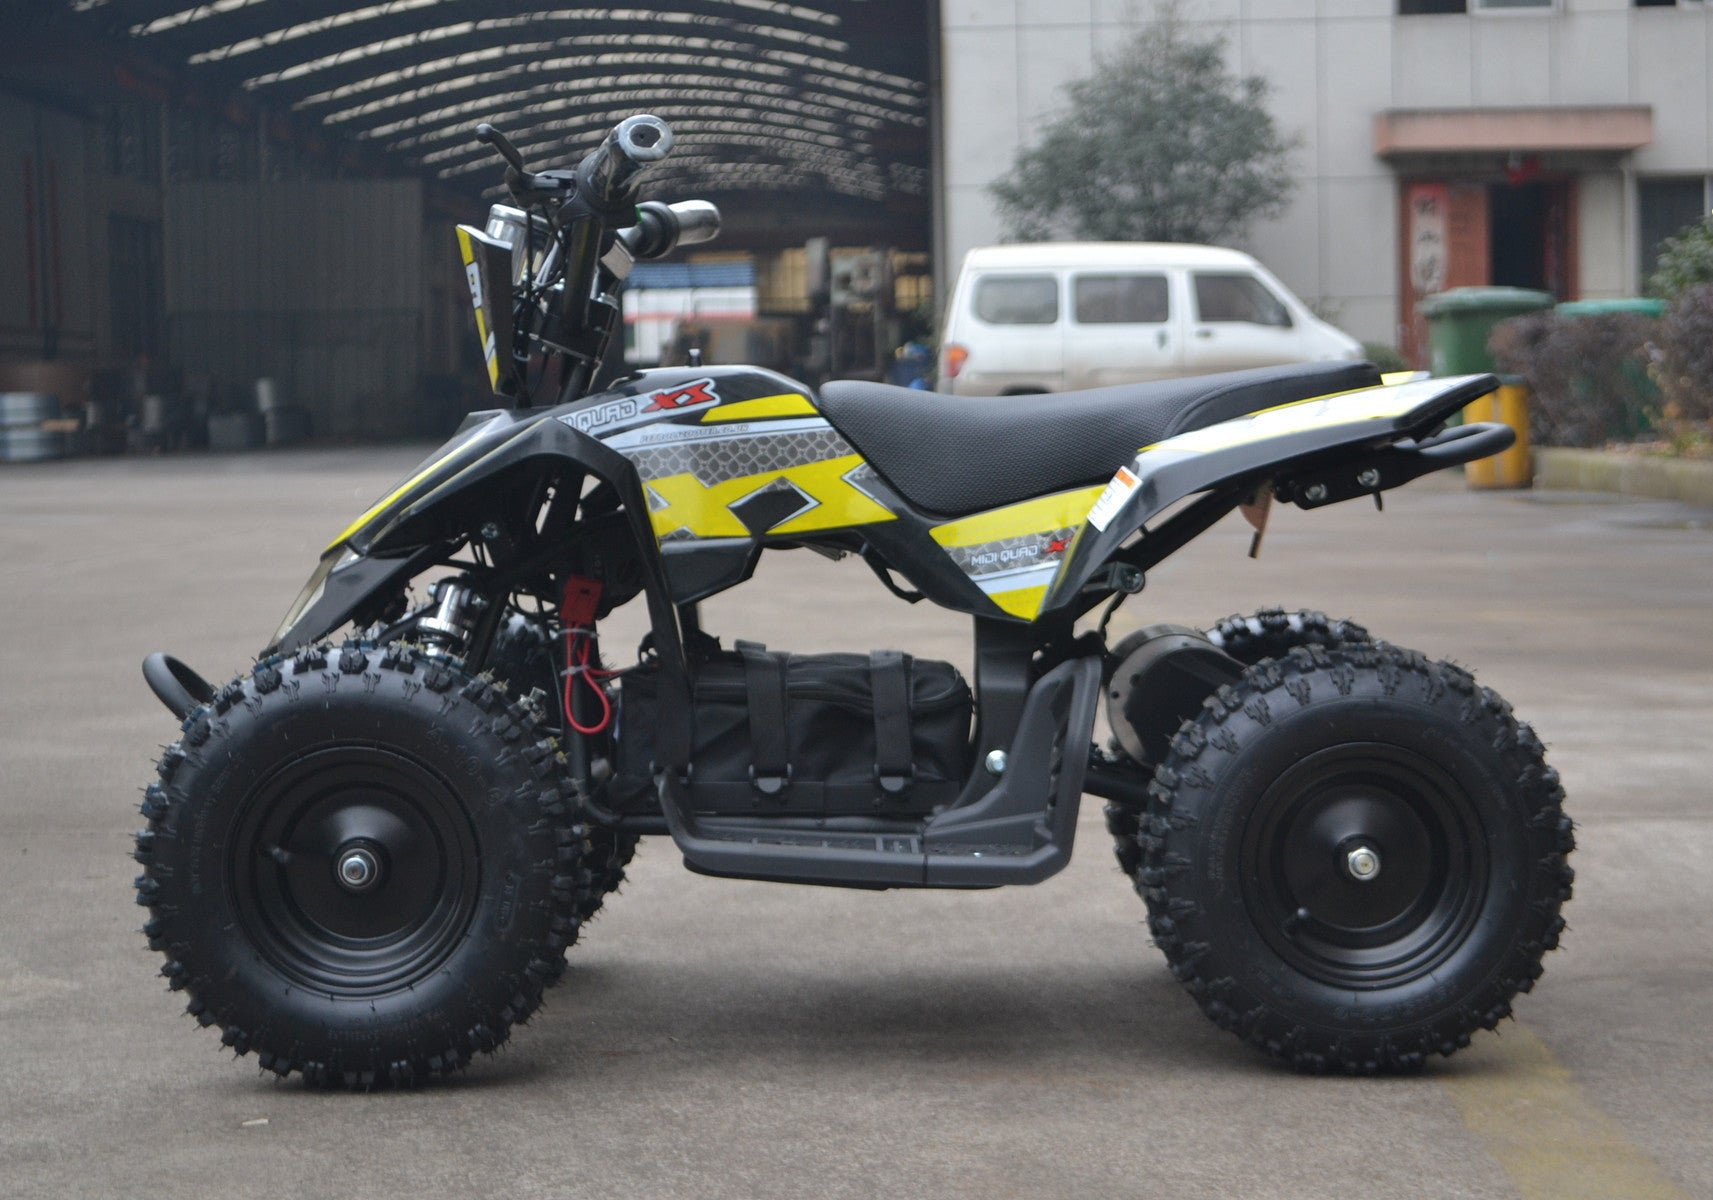 Where to buy kids Electric ATV from?